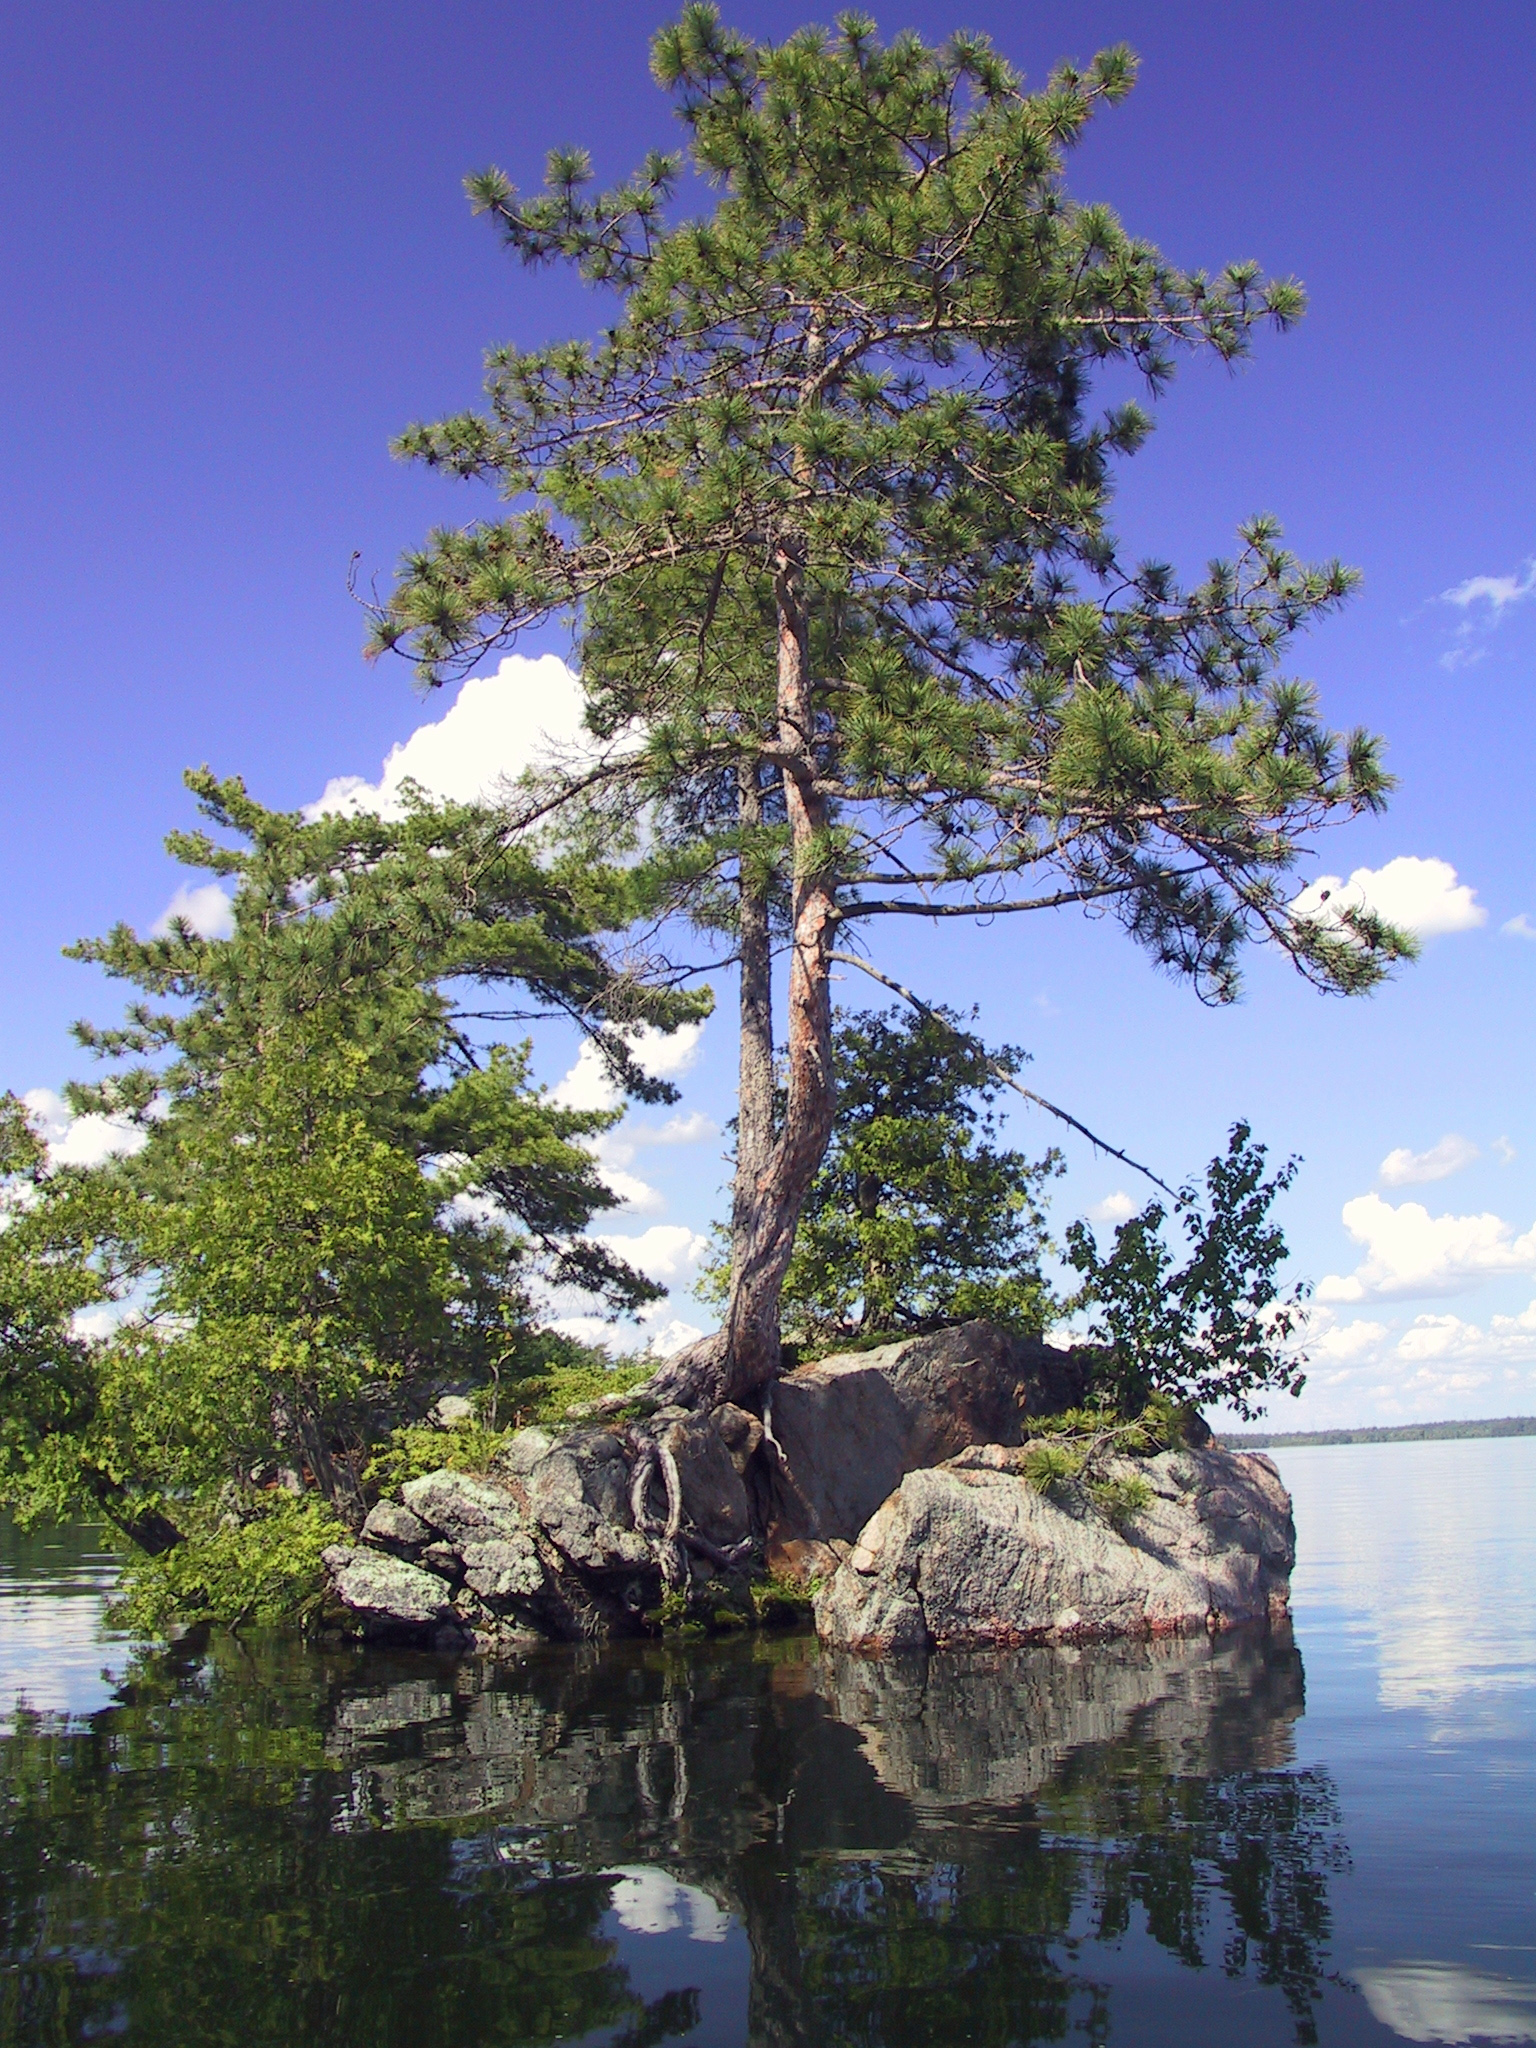 Image of a Tree in the water.